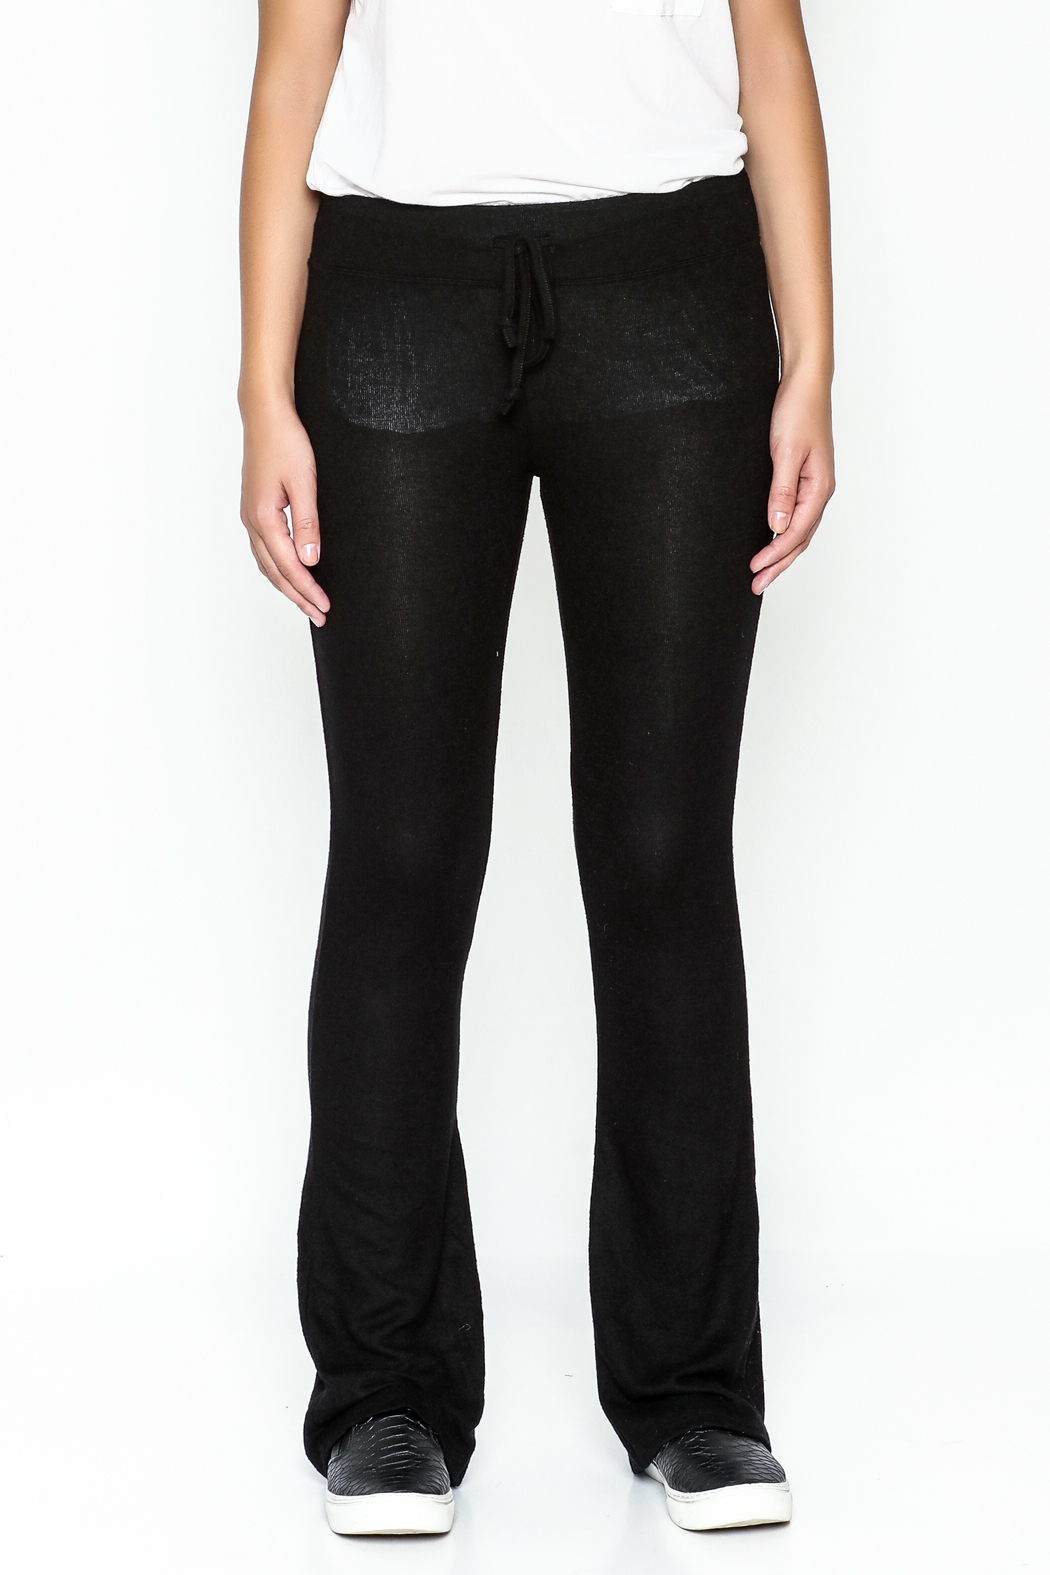 z supply Sheer Black Bootcut Pants - Front Full Image